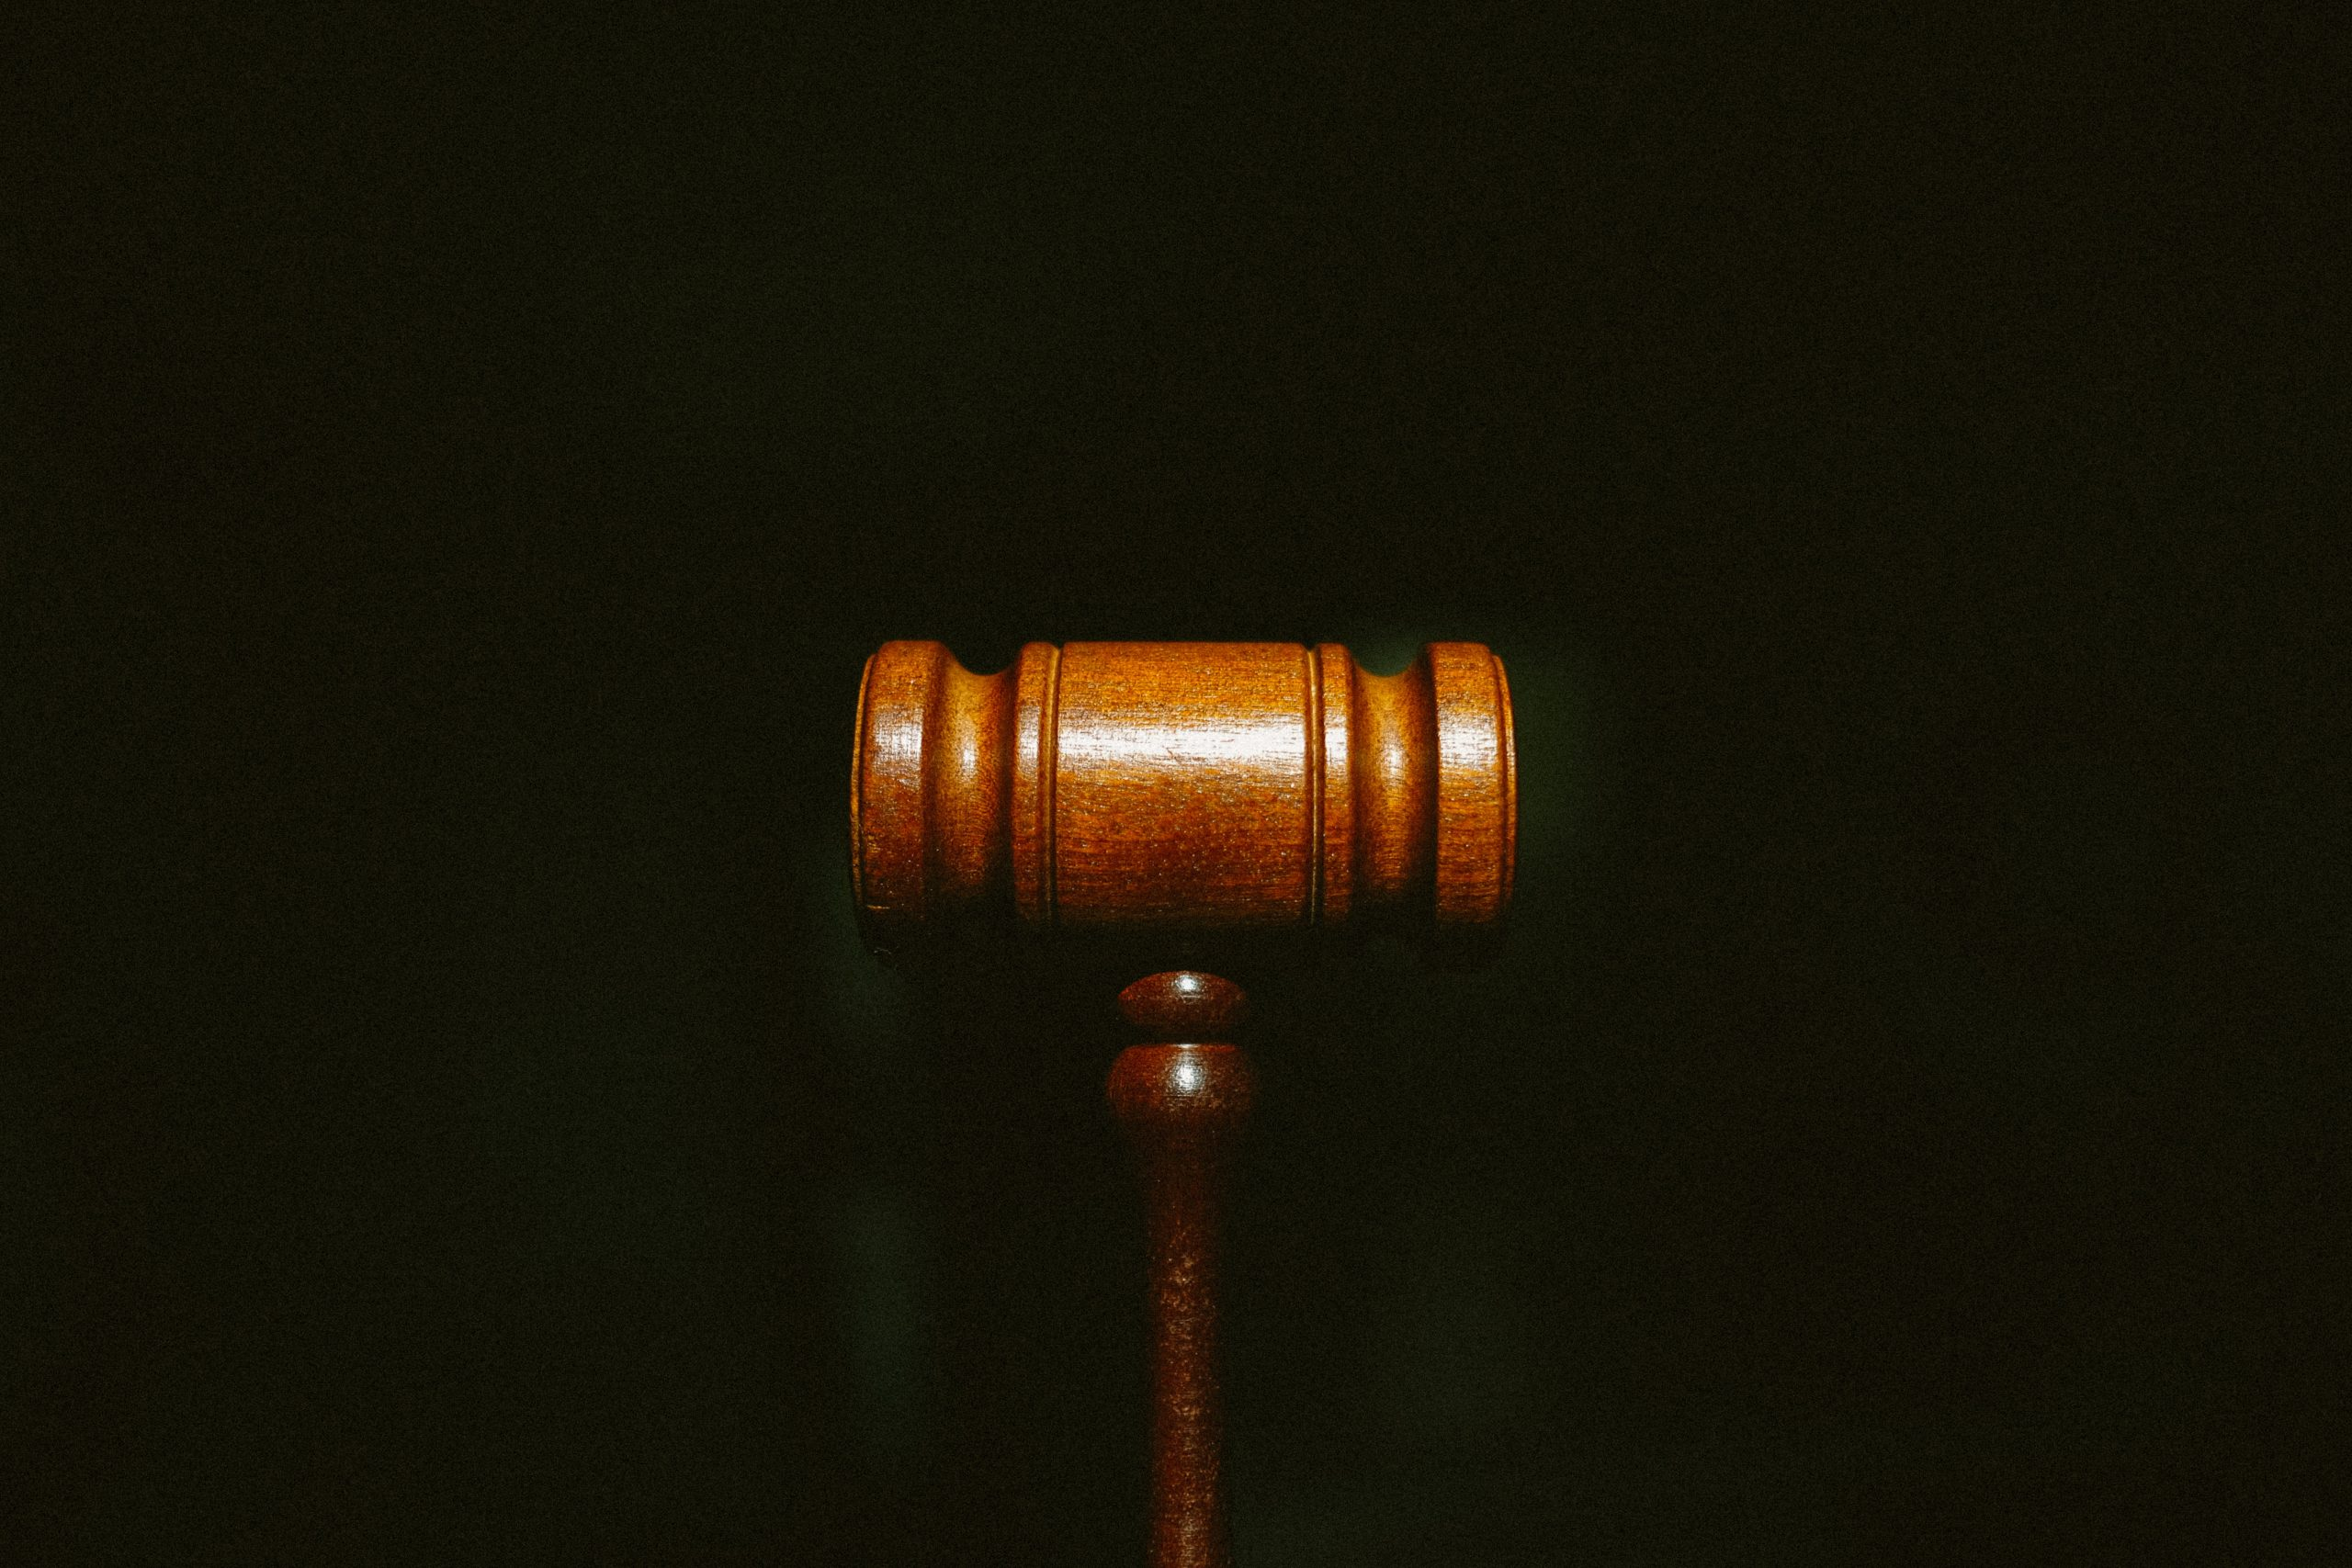 tingey-injury-law-firm-nSpj-Z12lX0-unsplash-scaled